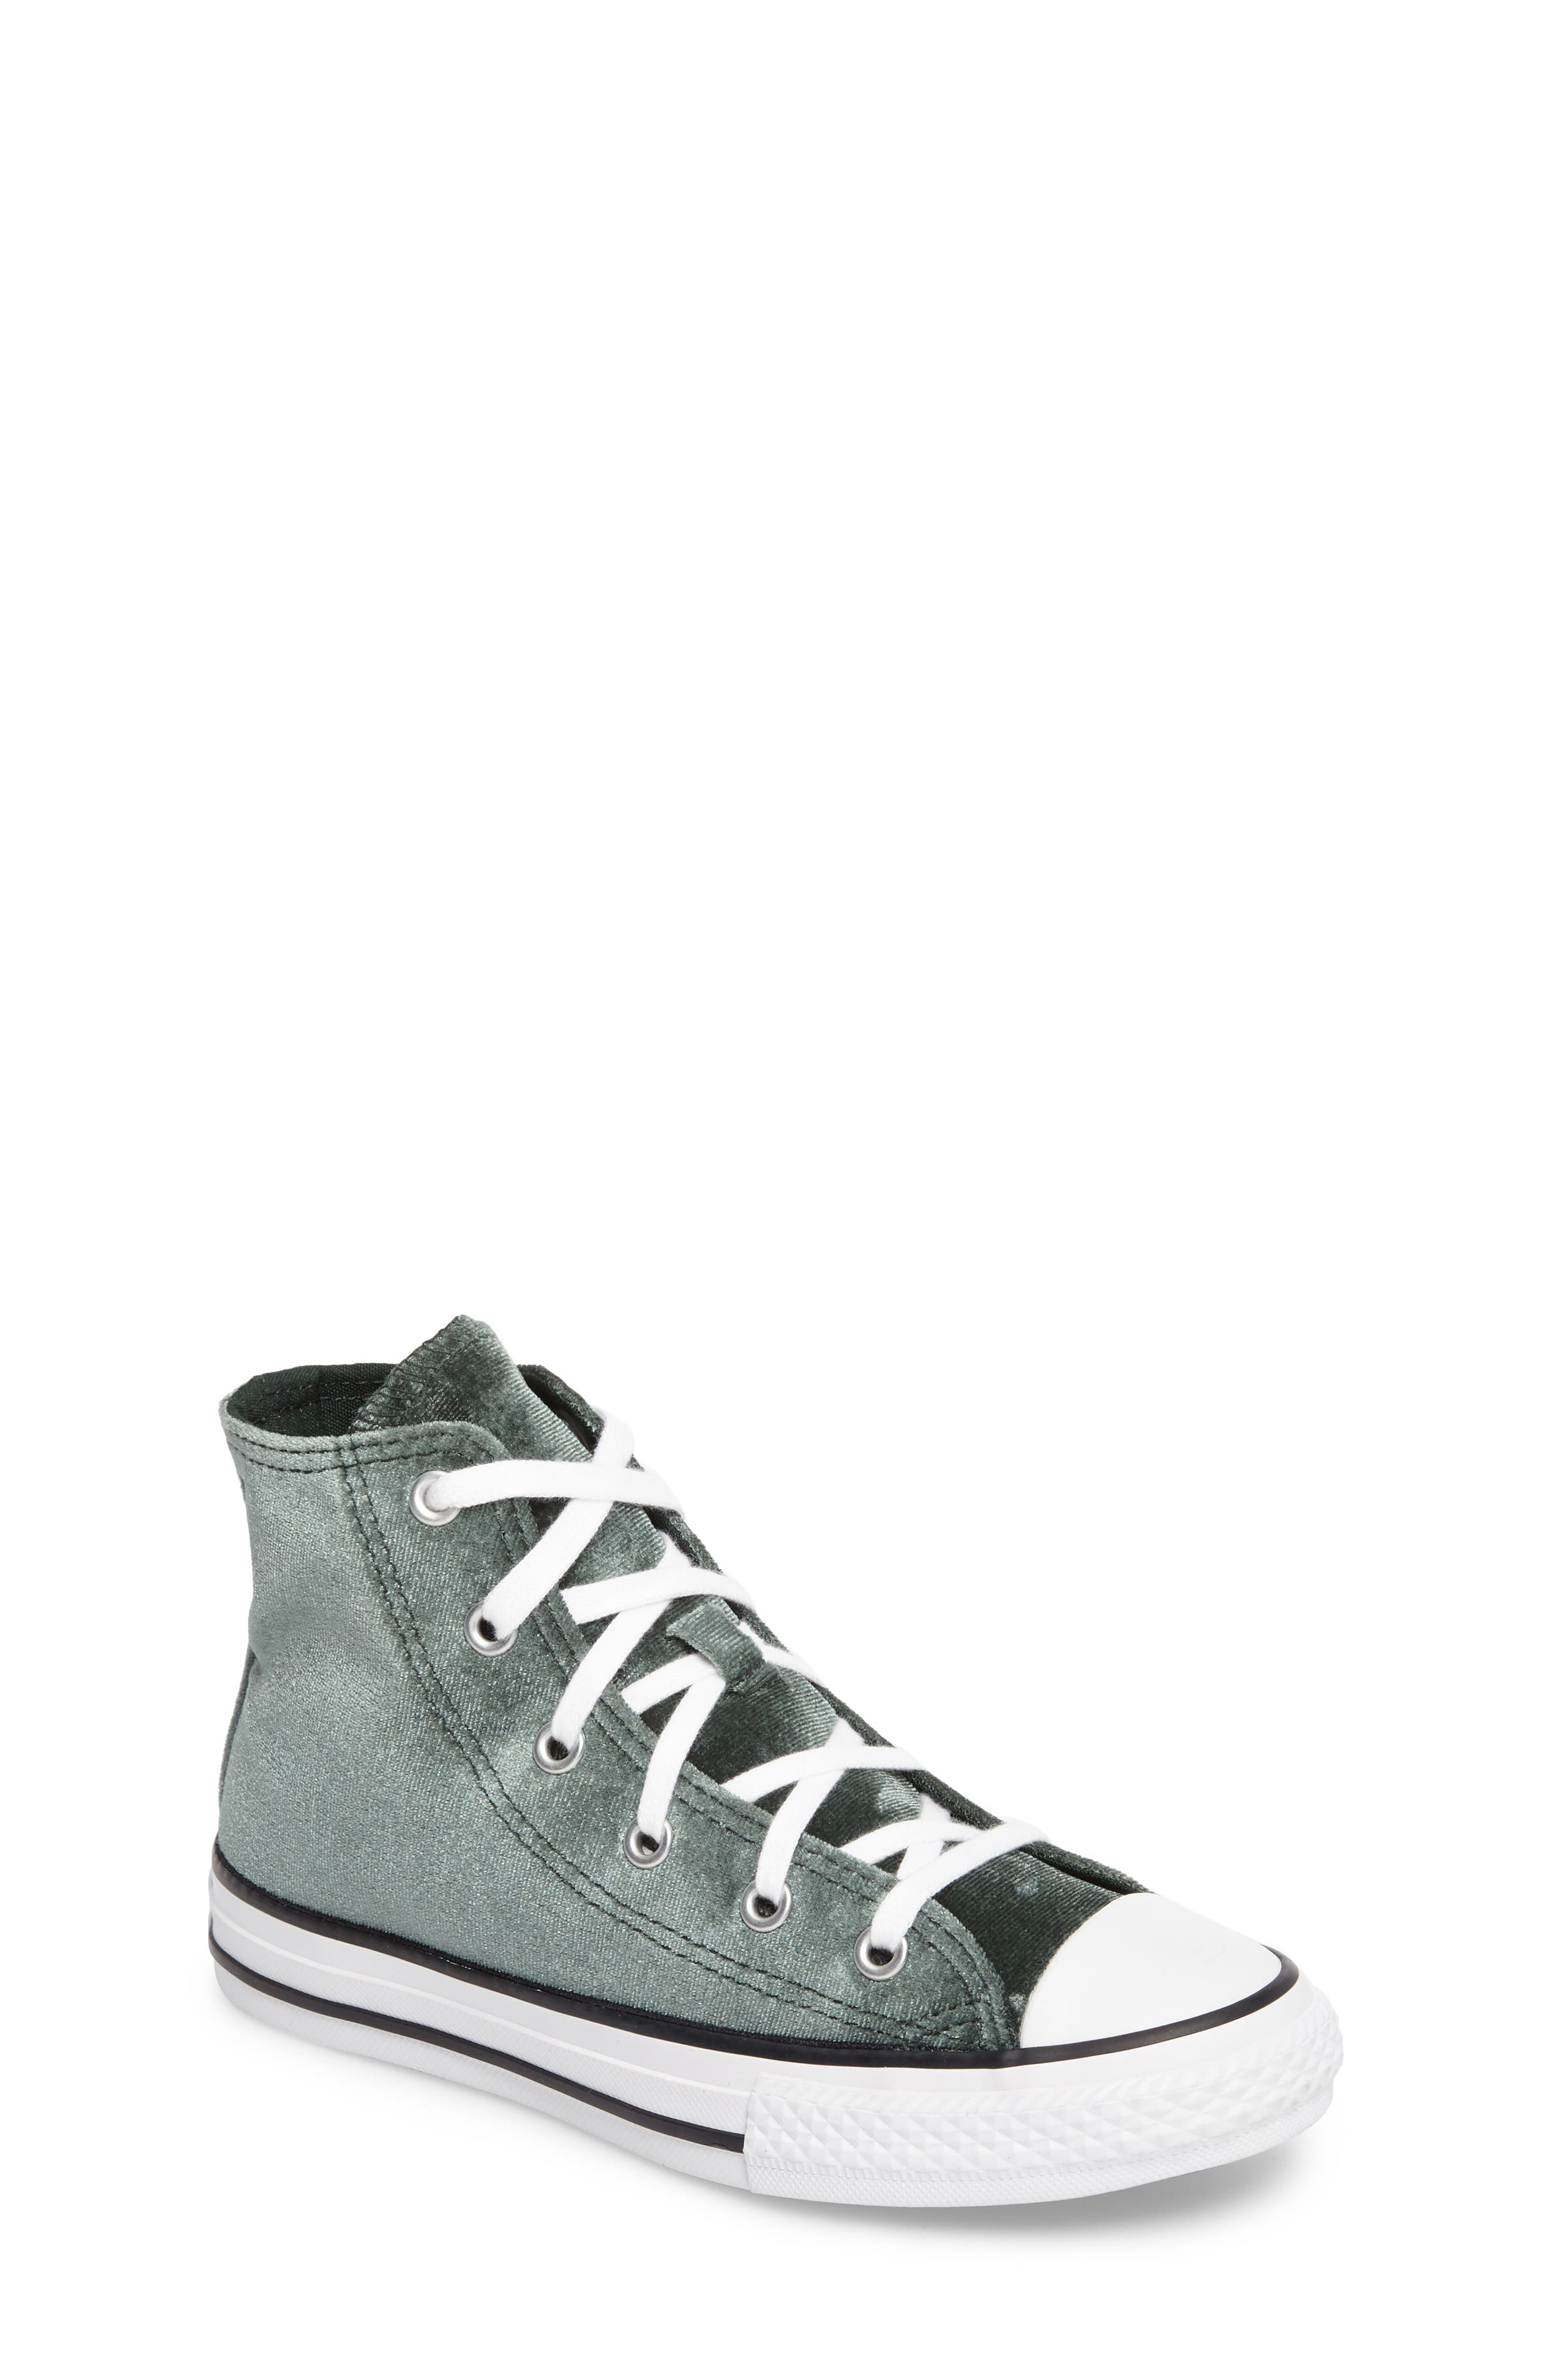 Chuck Taylor<sup>®</sup> All Star<sup>®</sup> Velvet High Top Sneaker,                         Main,                         color, 300